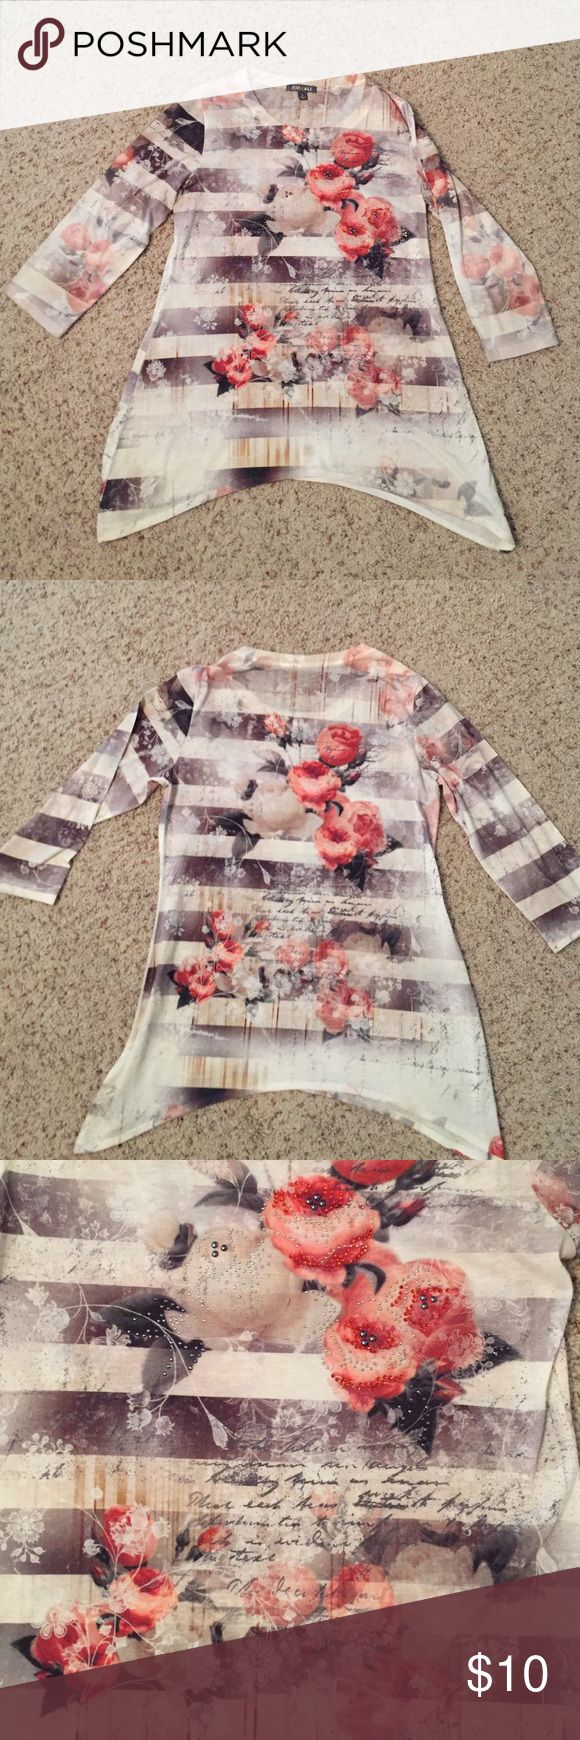 "Roz & Ali Rose Top Perfect for fall! Taupe and creme colored blouse with roses and stripes. Decorative studs on large roses (photo 4). Shark bite hem. Great condition. 28"" at longest point. Polyester. Tops Blouses"